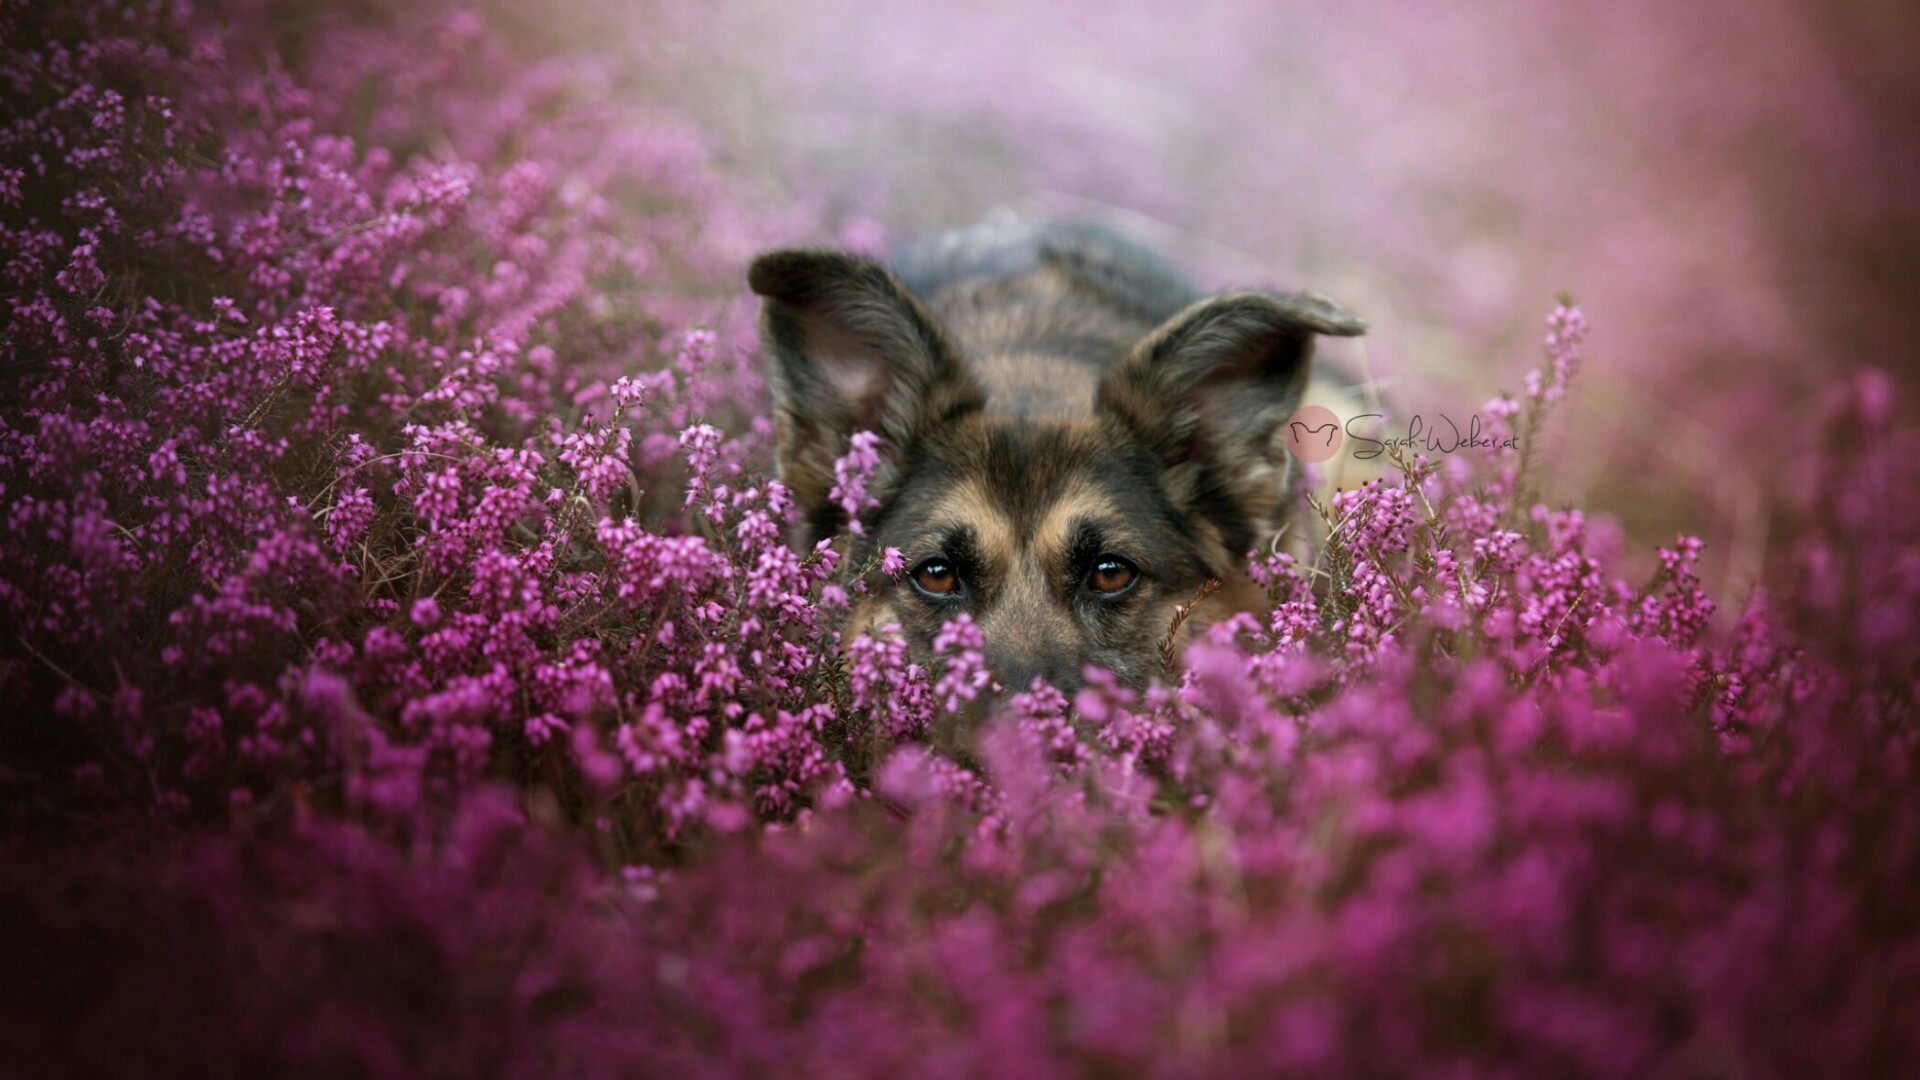 German Shepherd dog in the flowers wallpaper